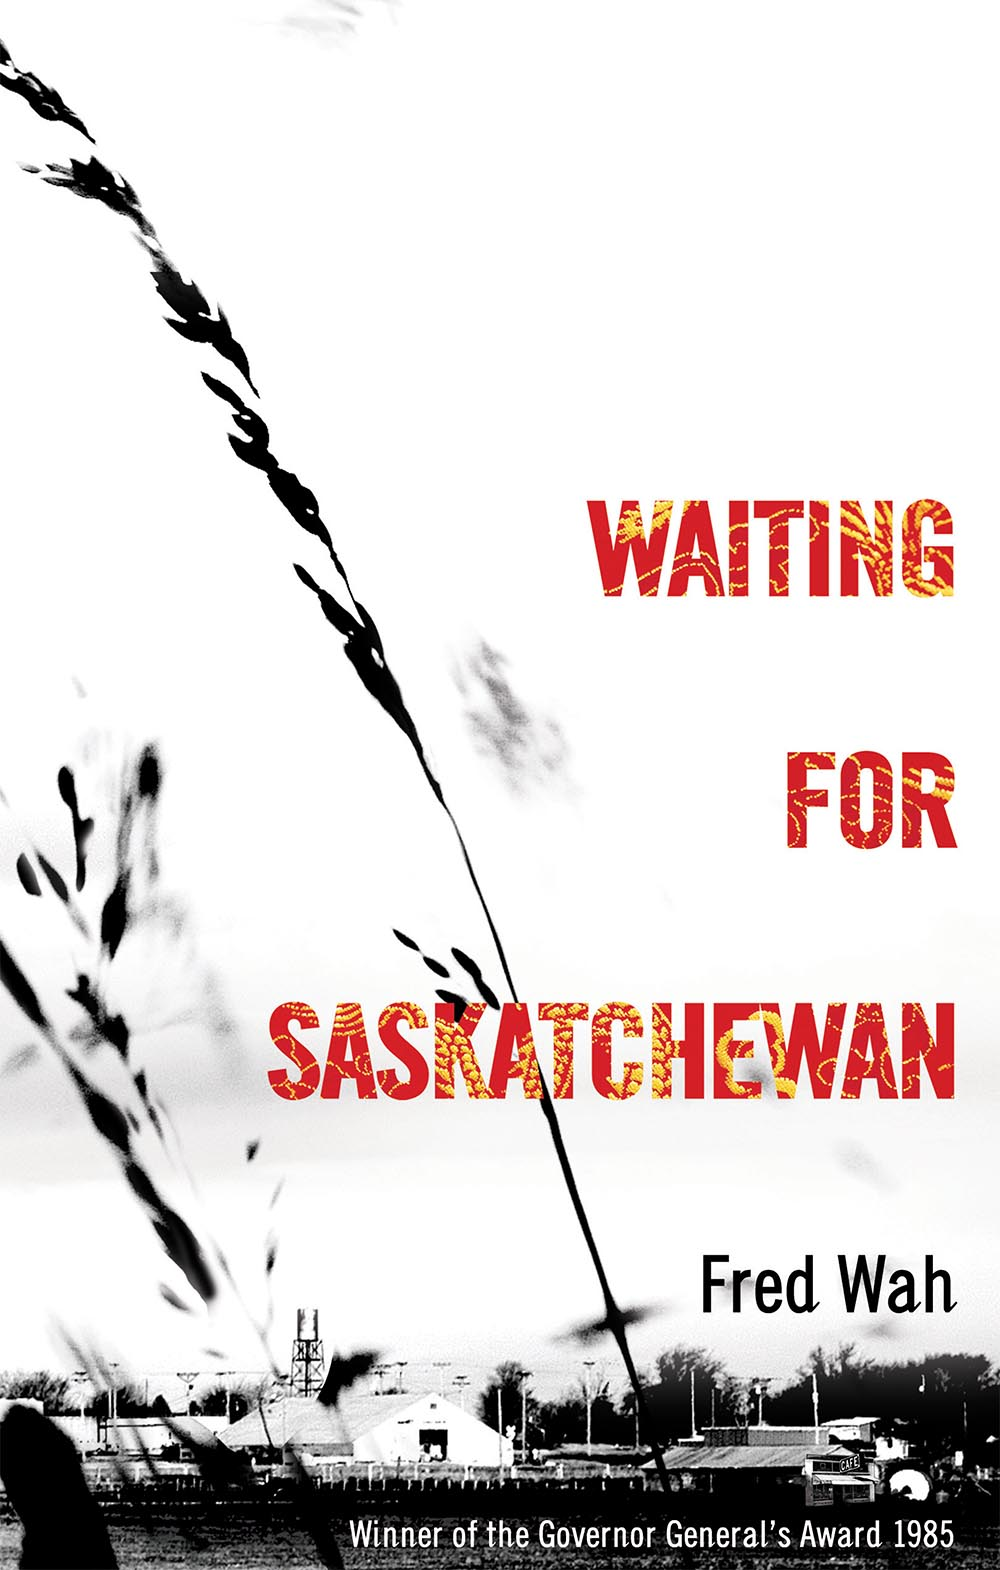 Waiting for Saskatchewan by Fred Wah